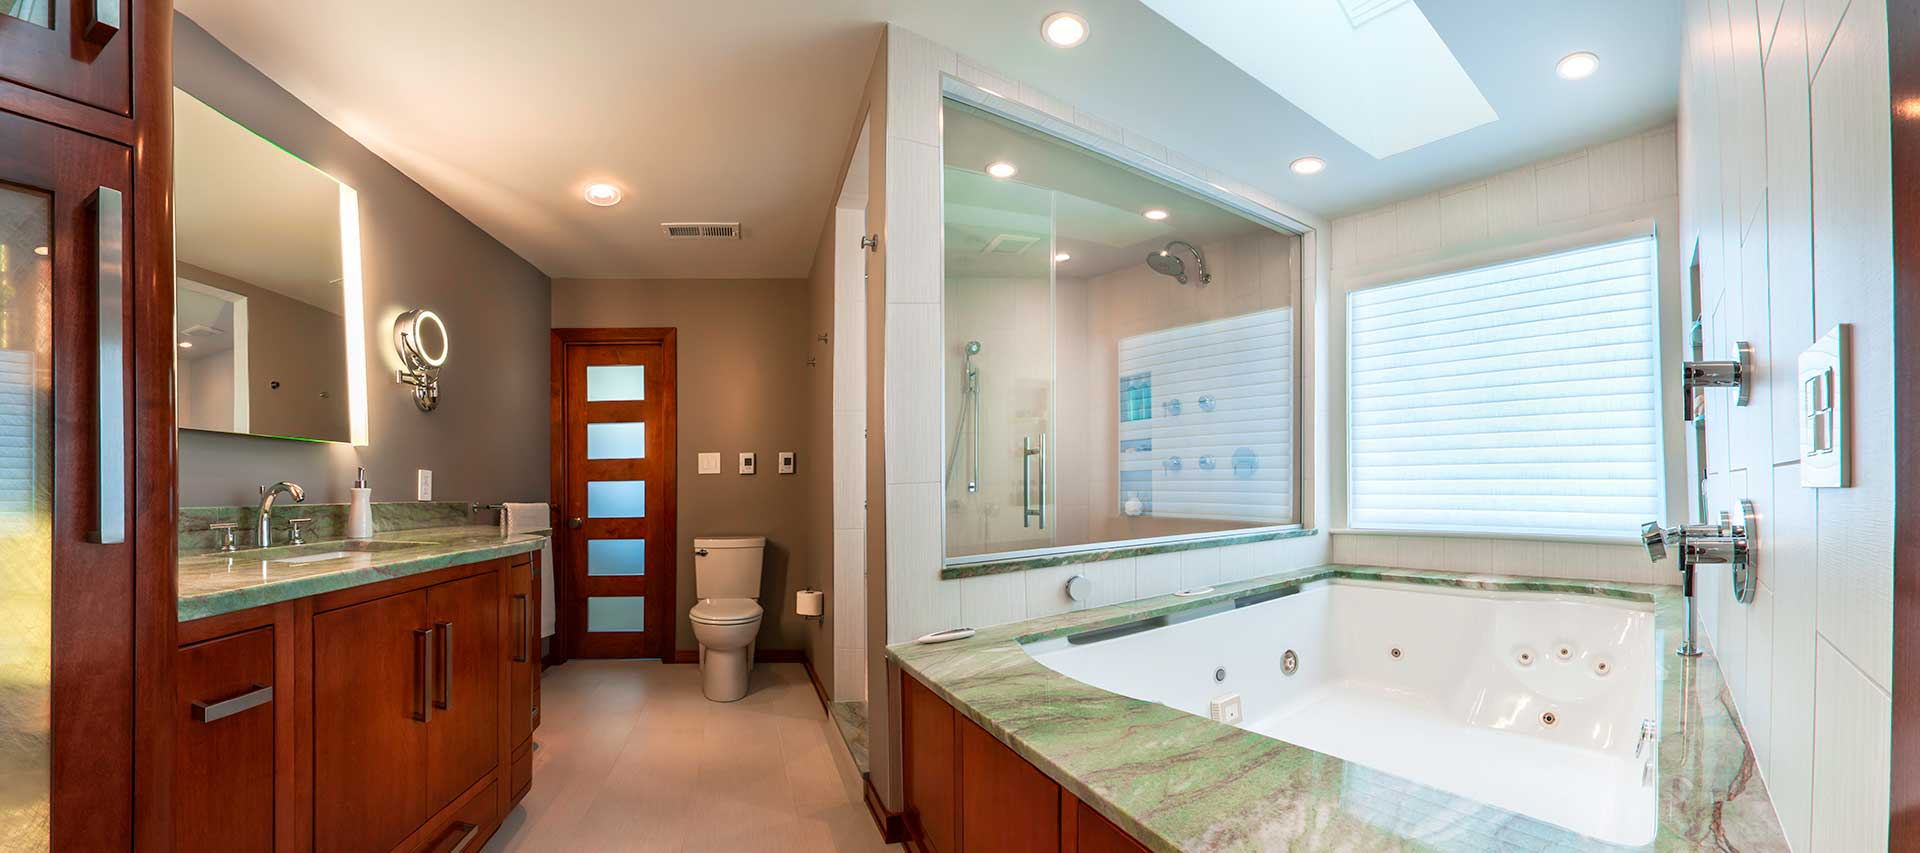 Contemporary design bathroom remodel in Terre Haute, IN